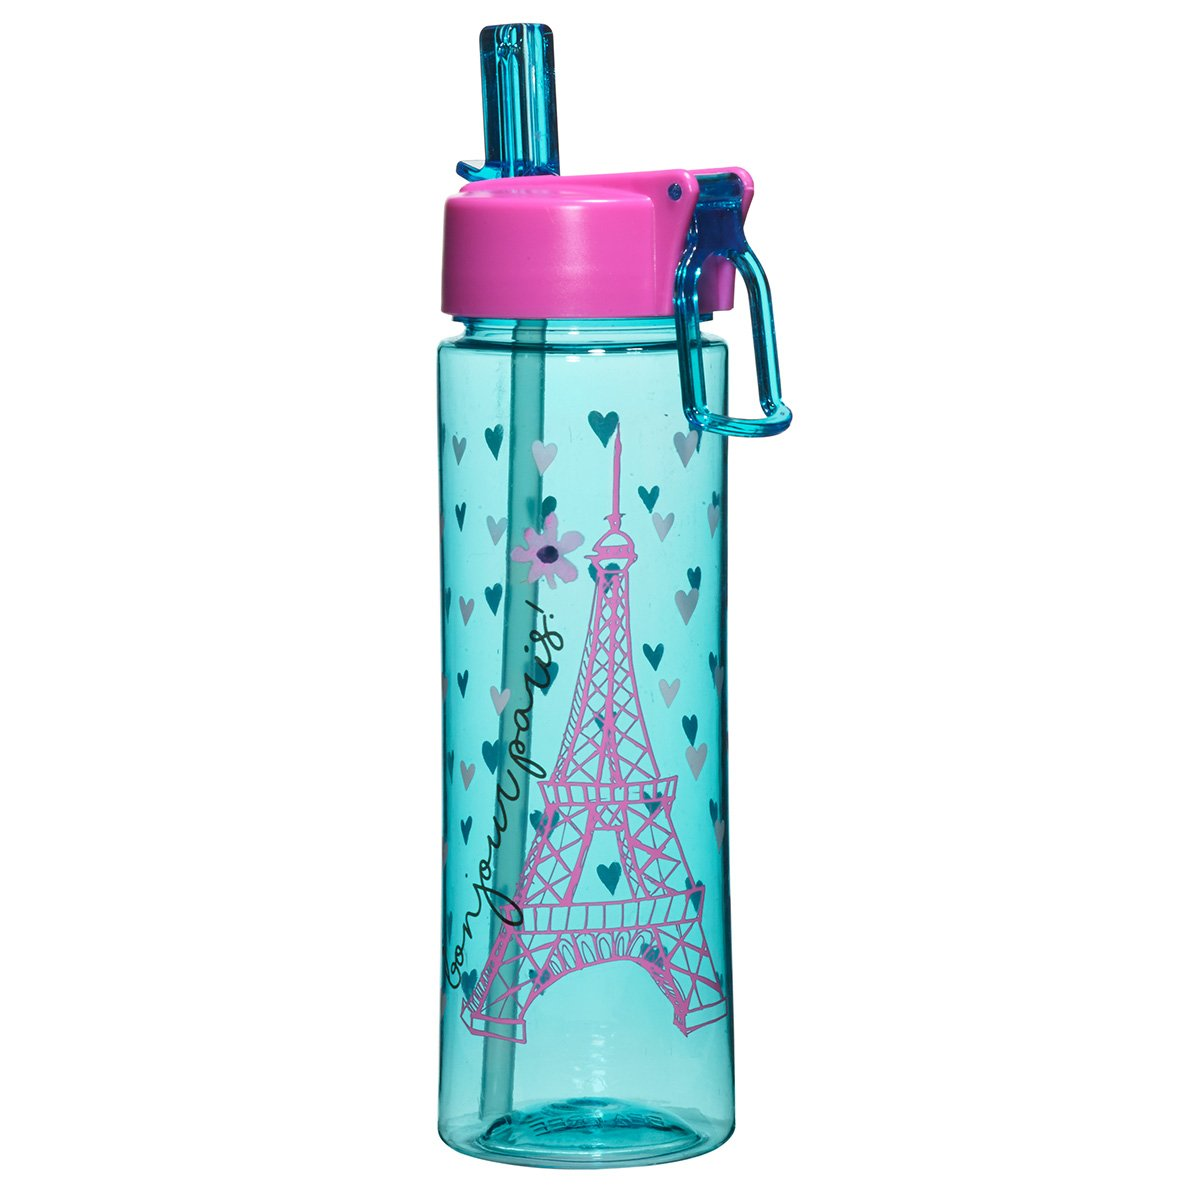 Bonjour Paris Tritan Water Bottle 23246 by 3C4G